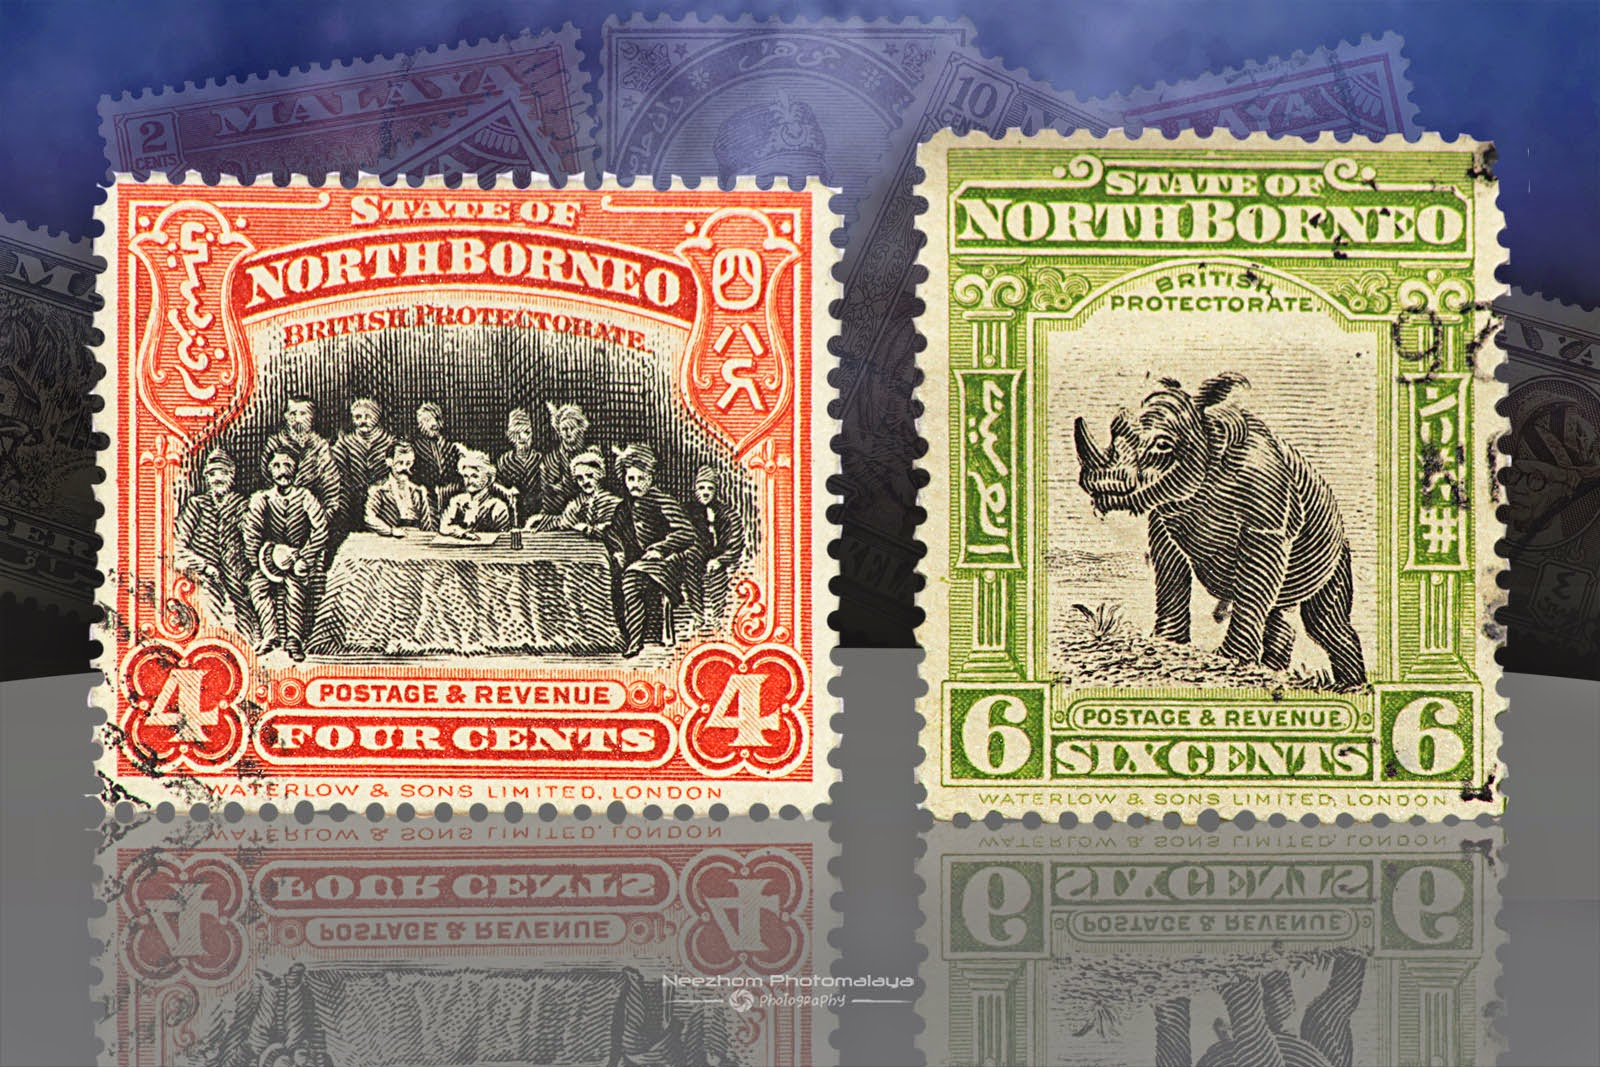 Setem North Borneo 4 Cents 1909, 6 Cents 1909